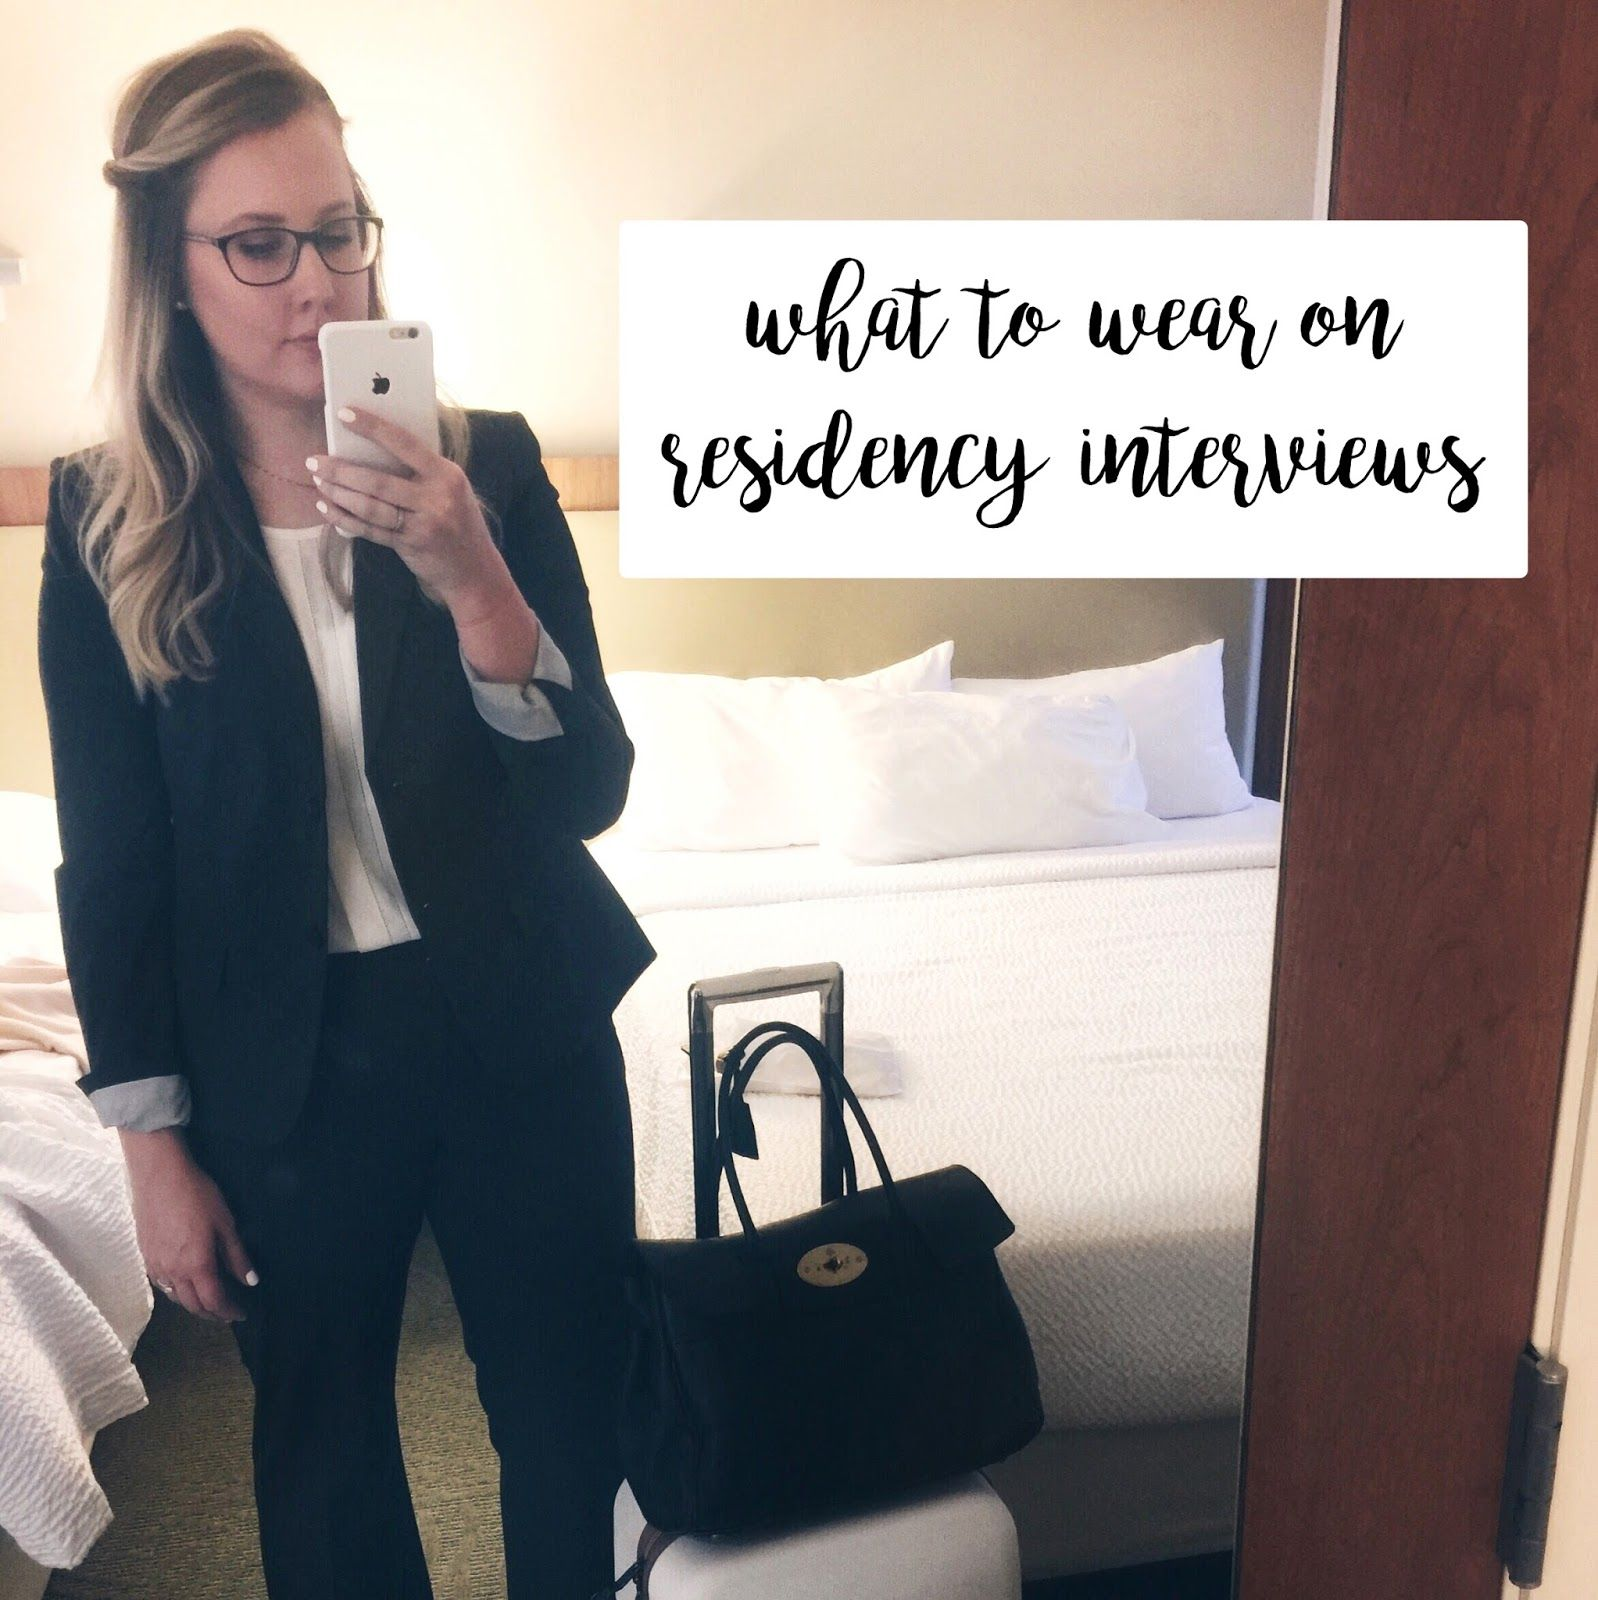 advice for residency interviews, what suit to wear on residency